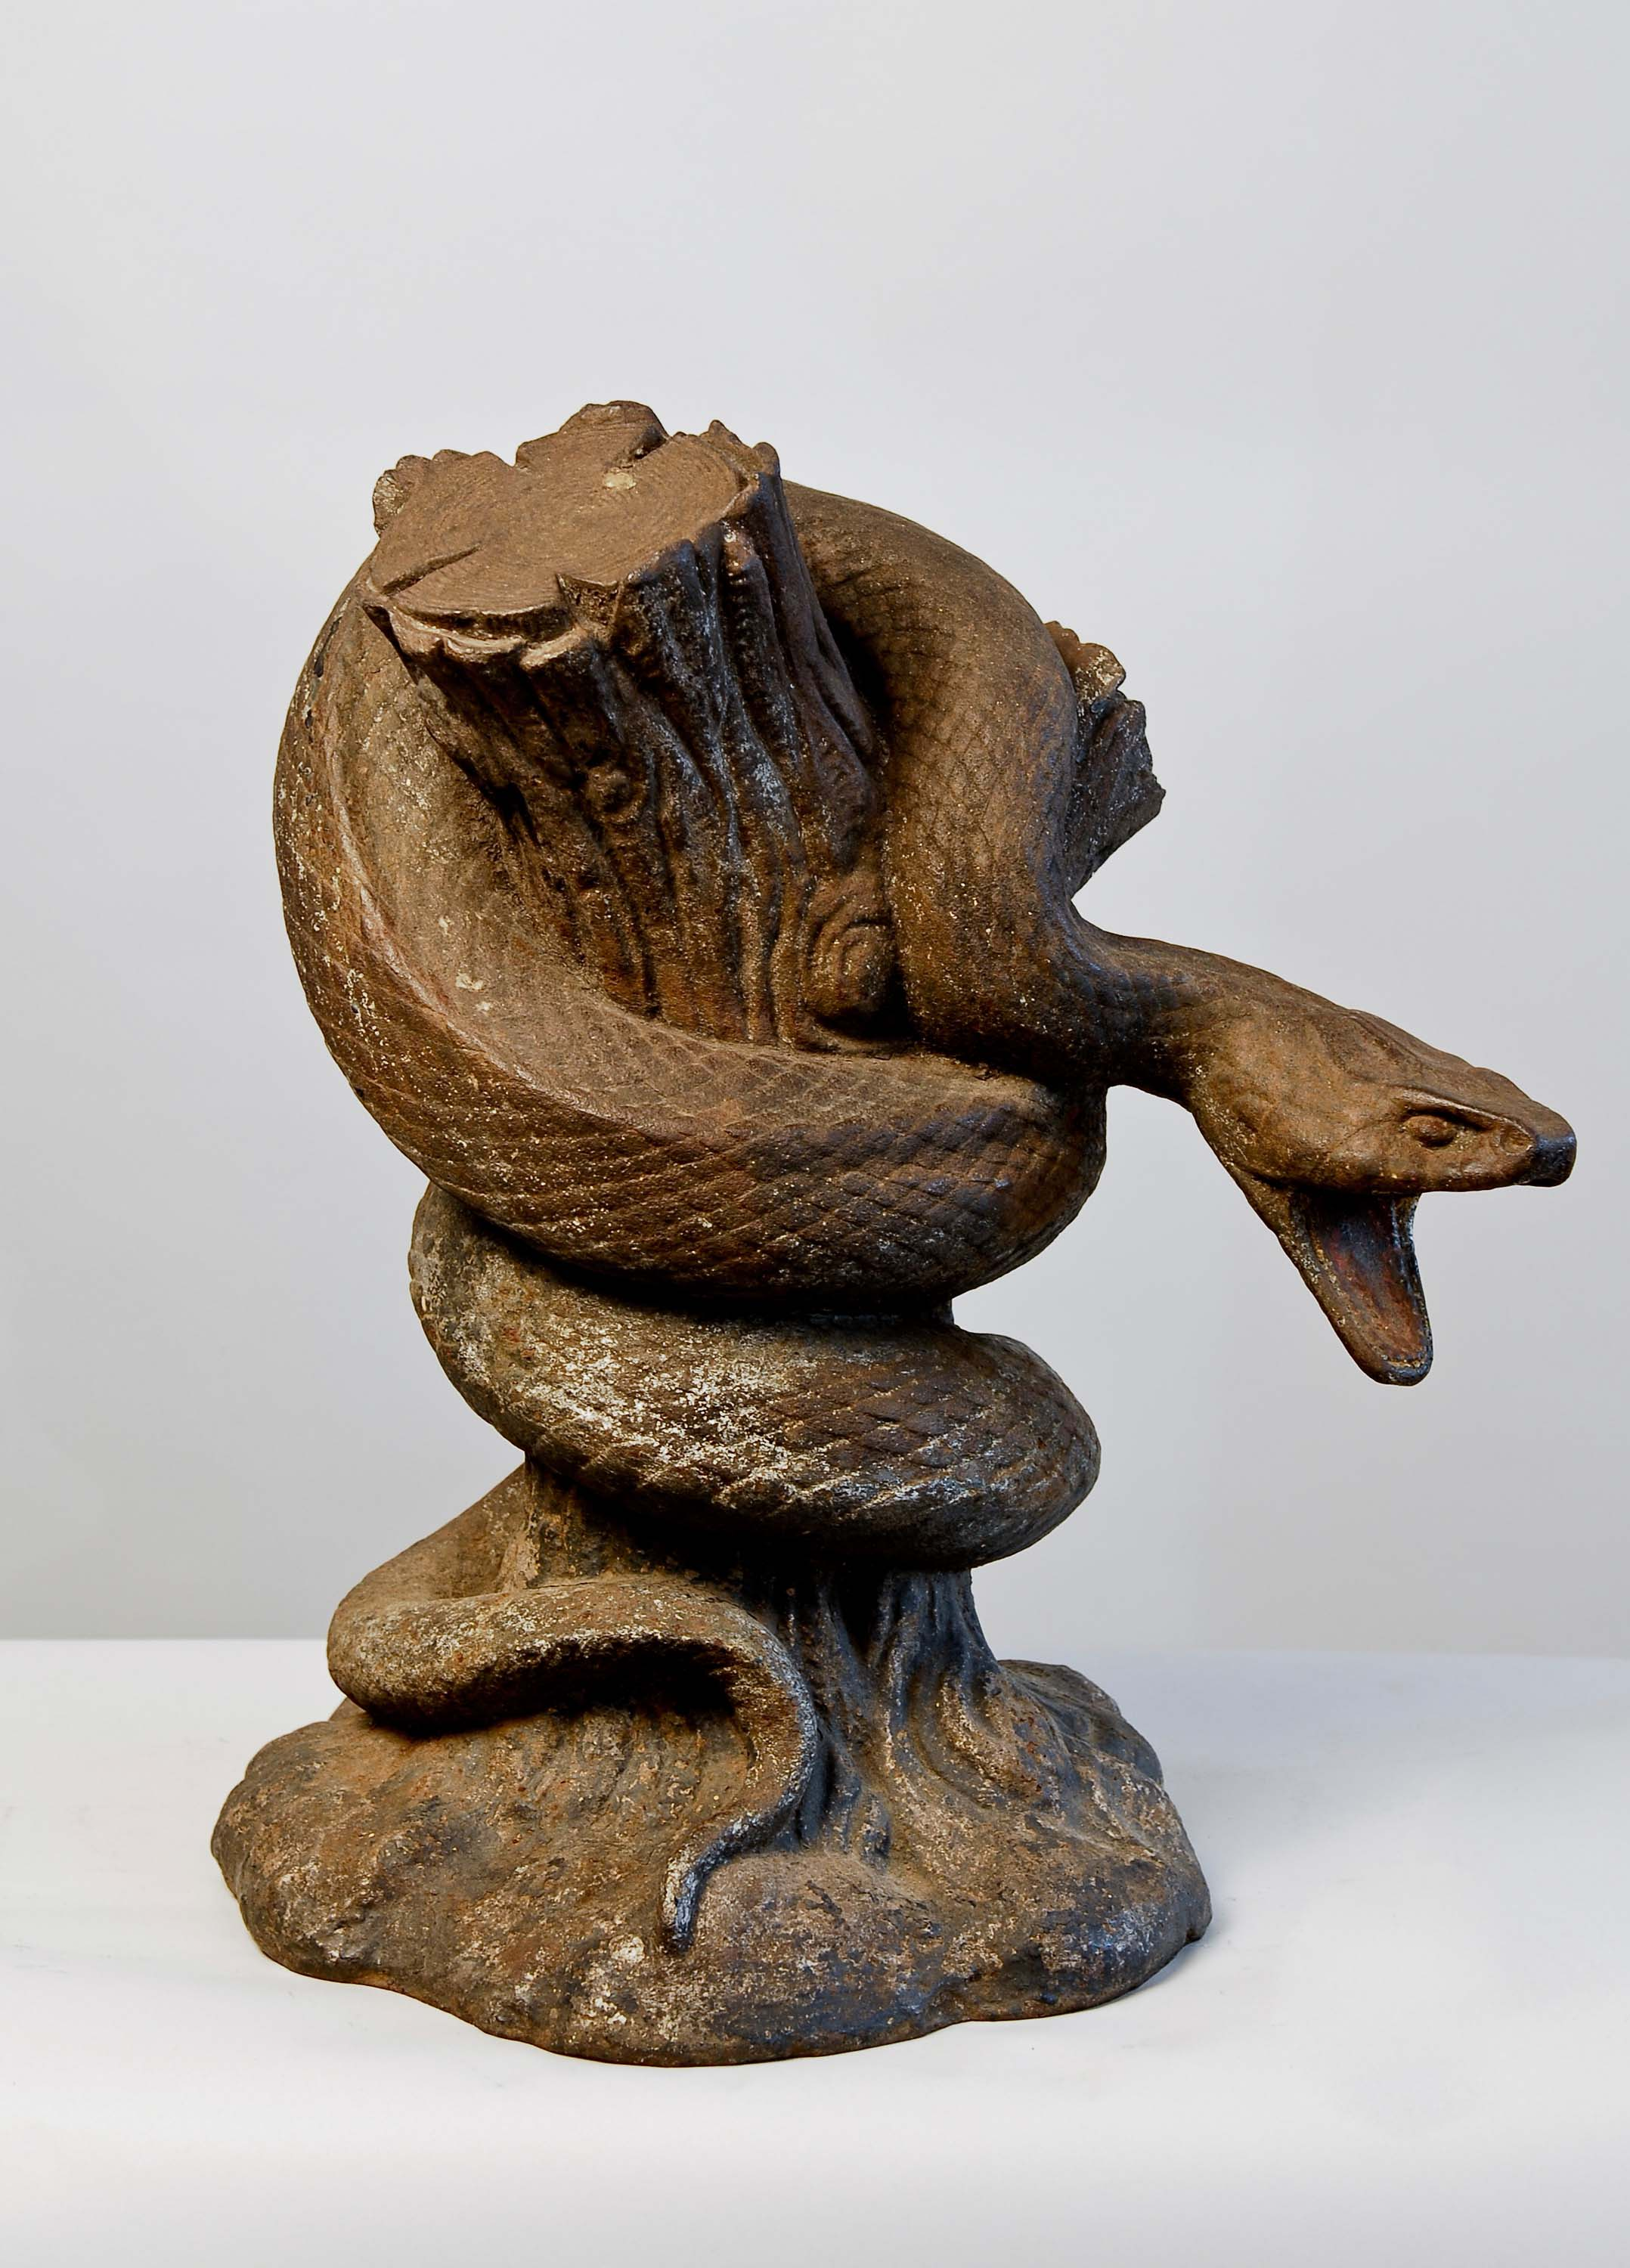 Anonymous, American, Snake Fountain Figure, c. 1900, cast iron with old paint, 30h x 25w x 25d in.